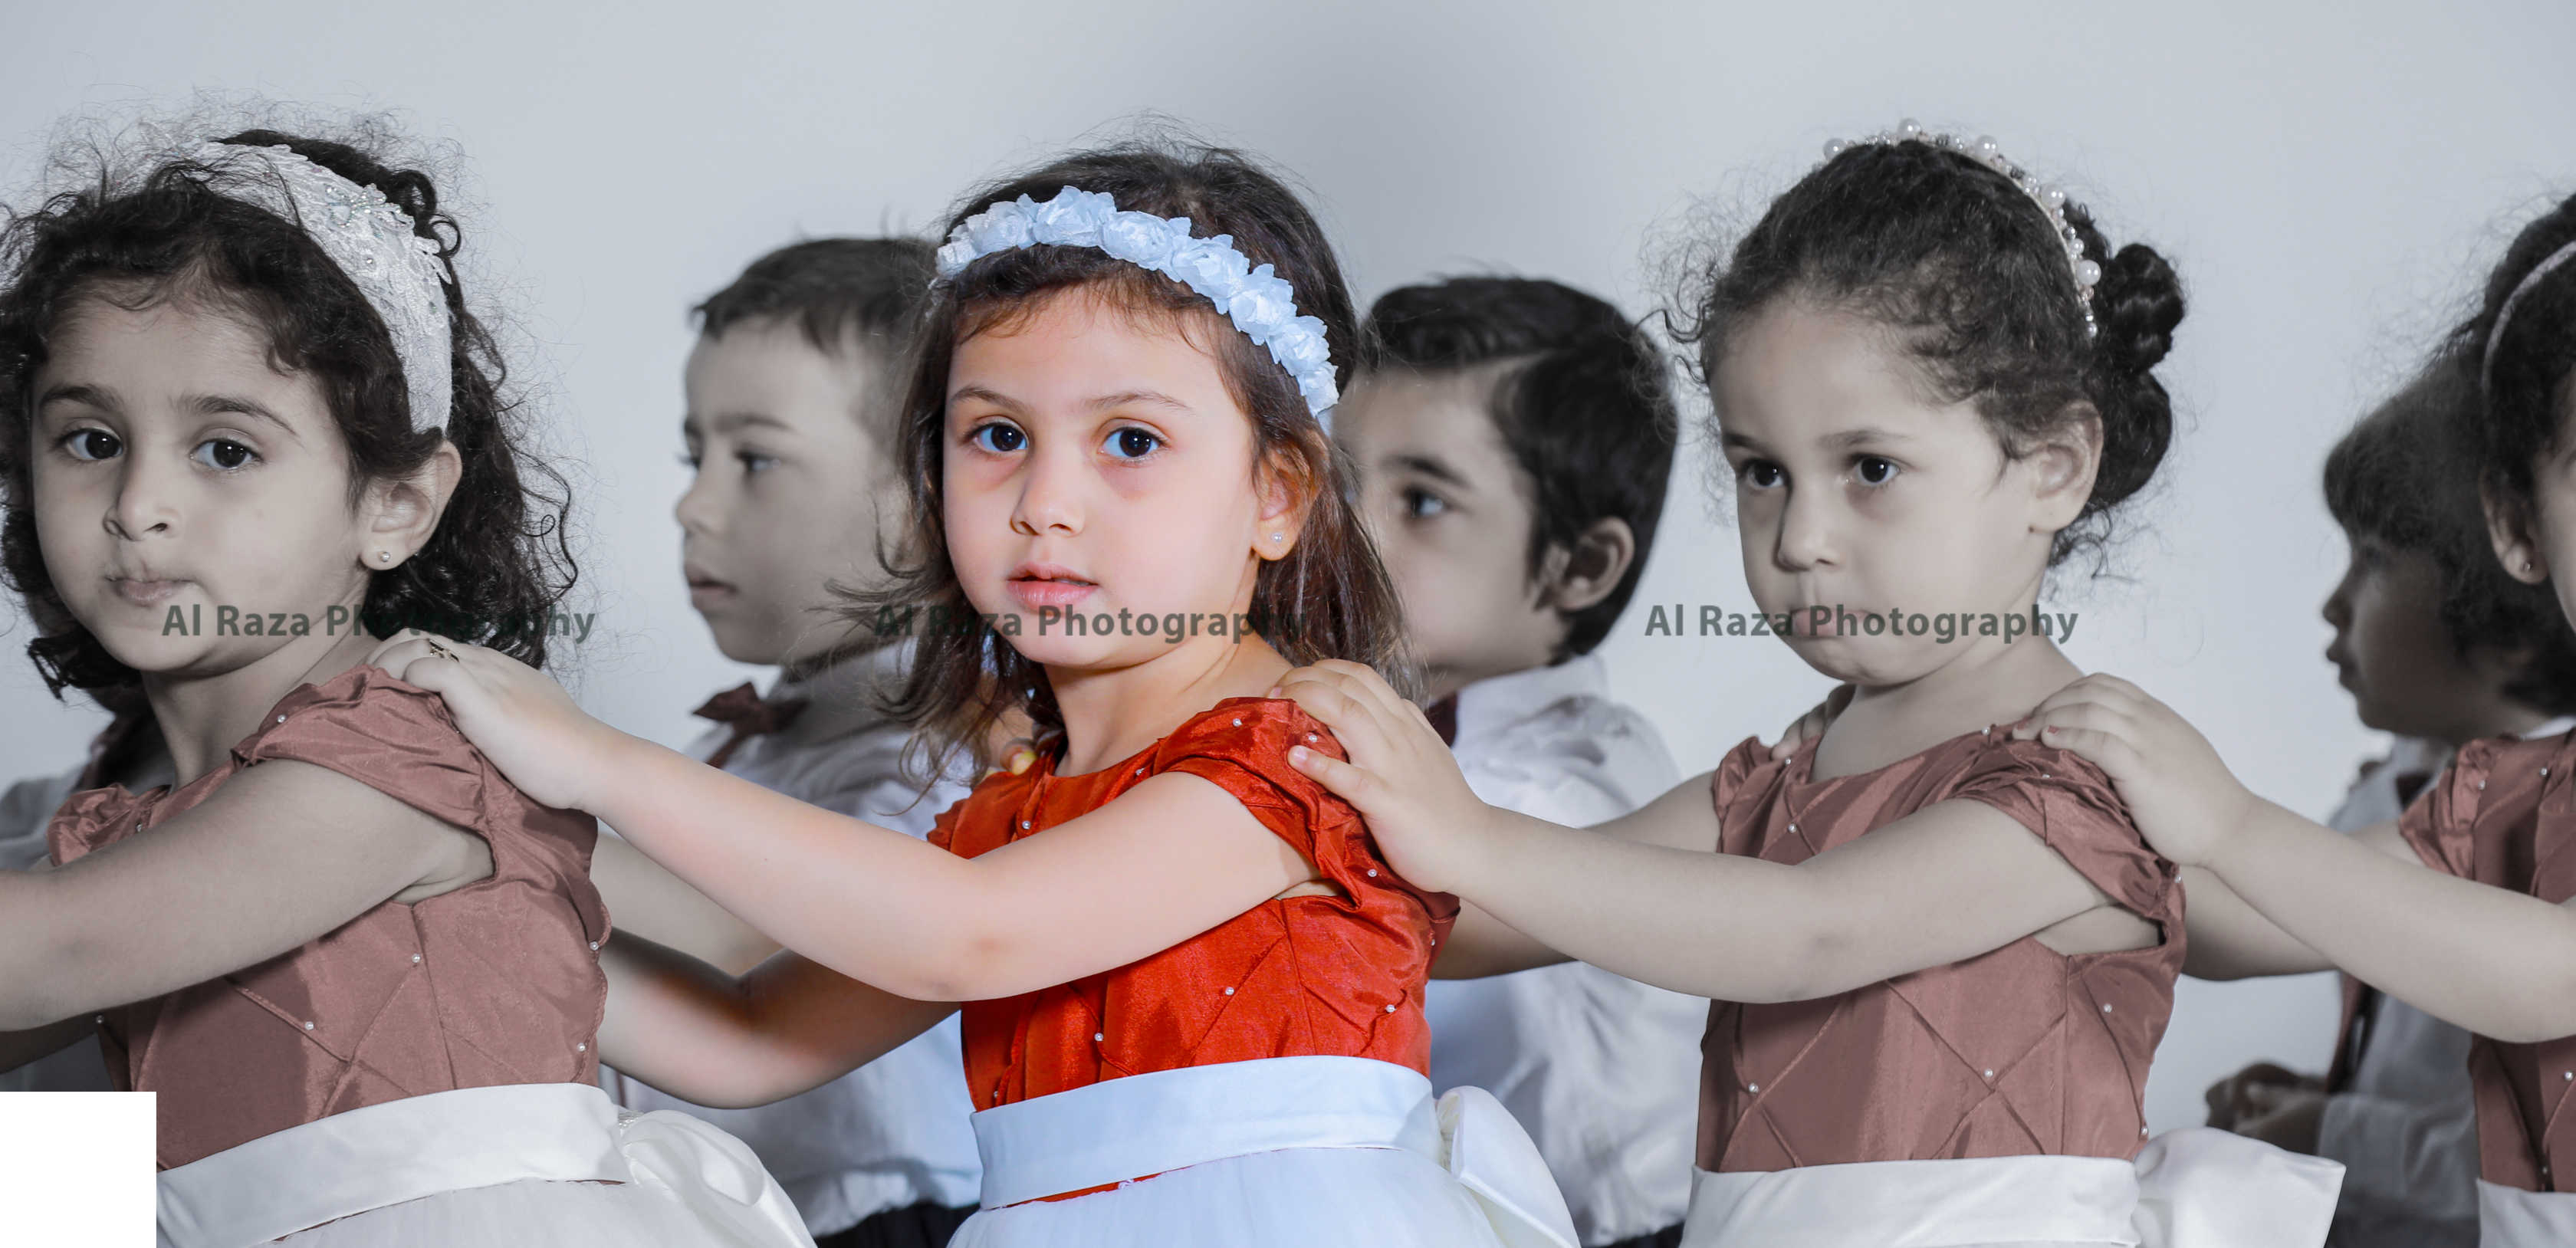 Nursery Day Photography in Qatar